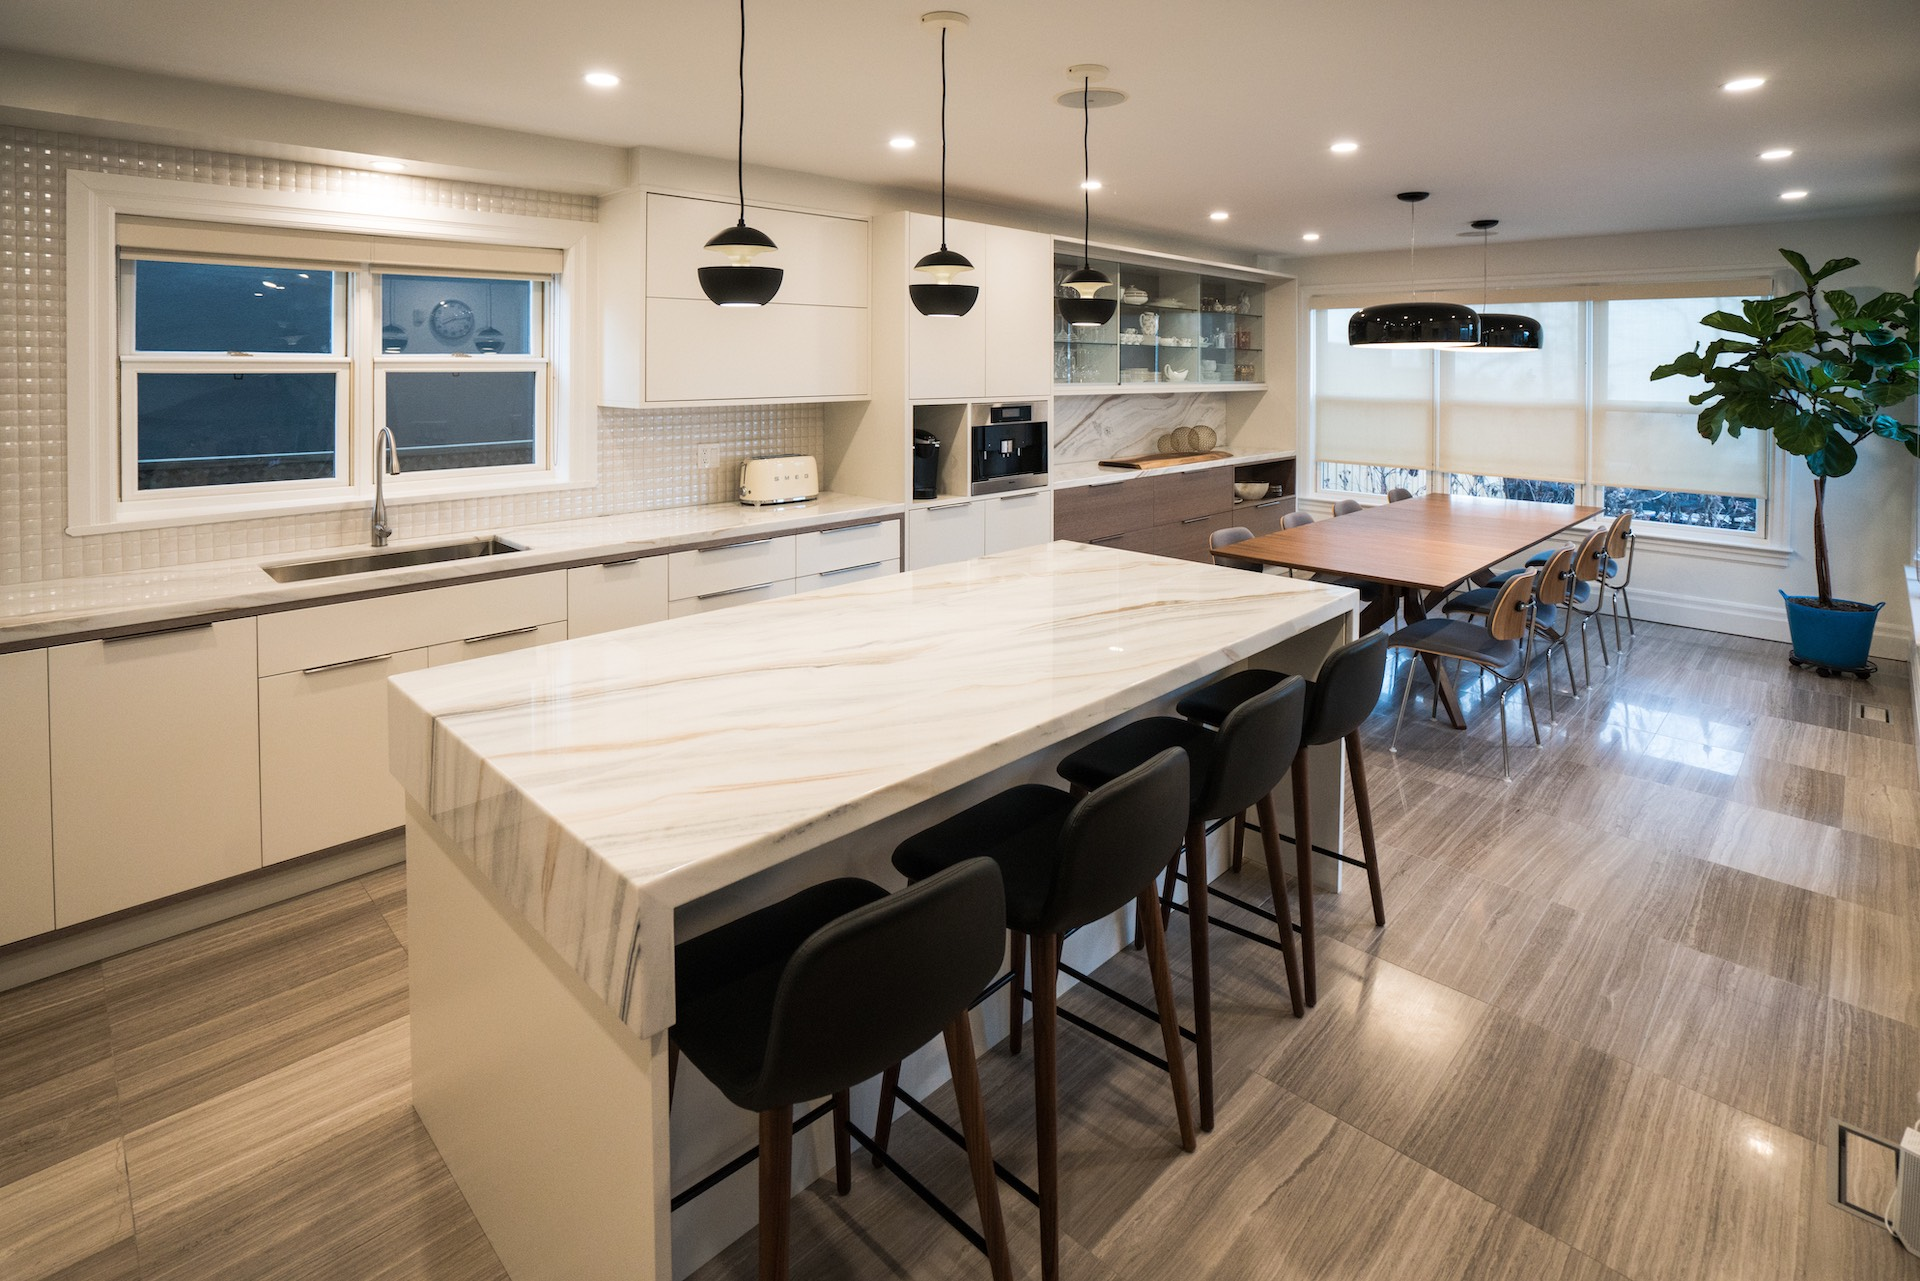 White kitchen with marble counter